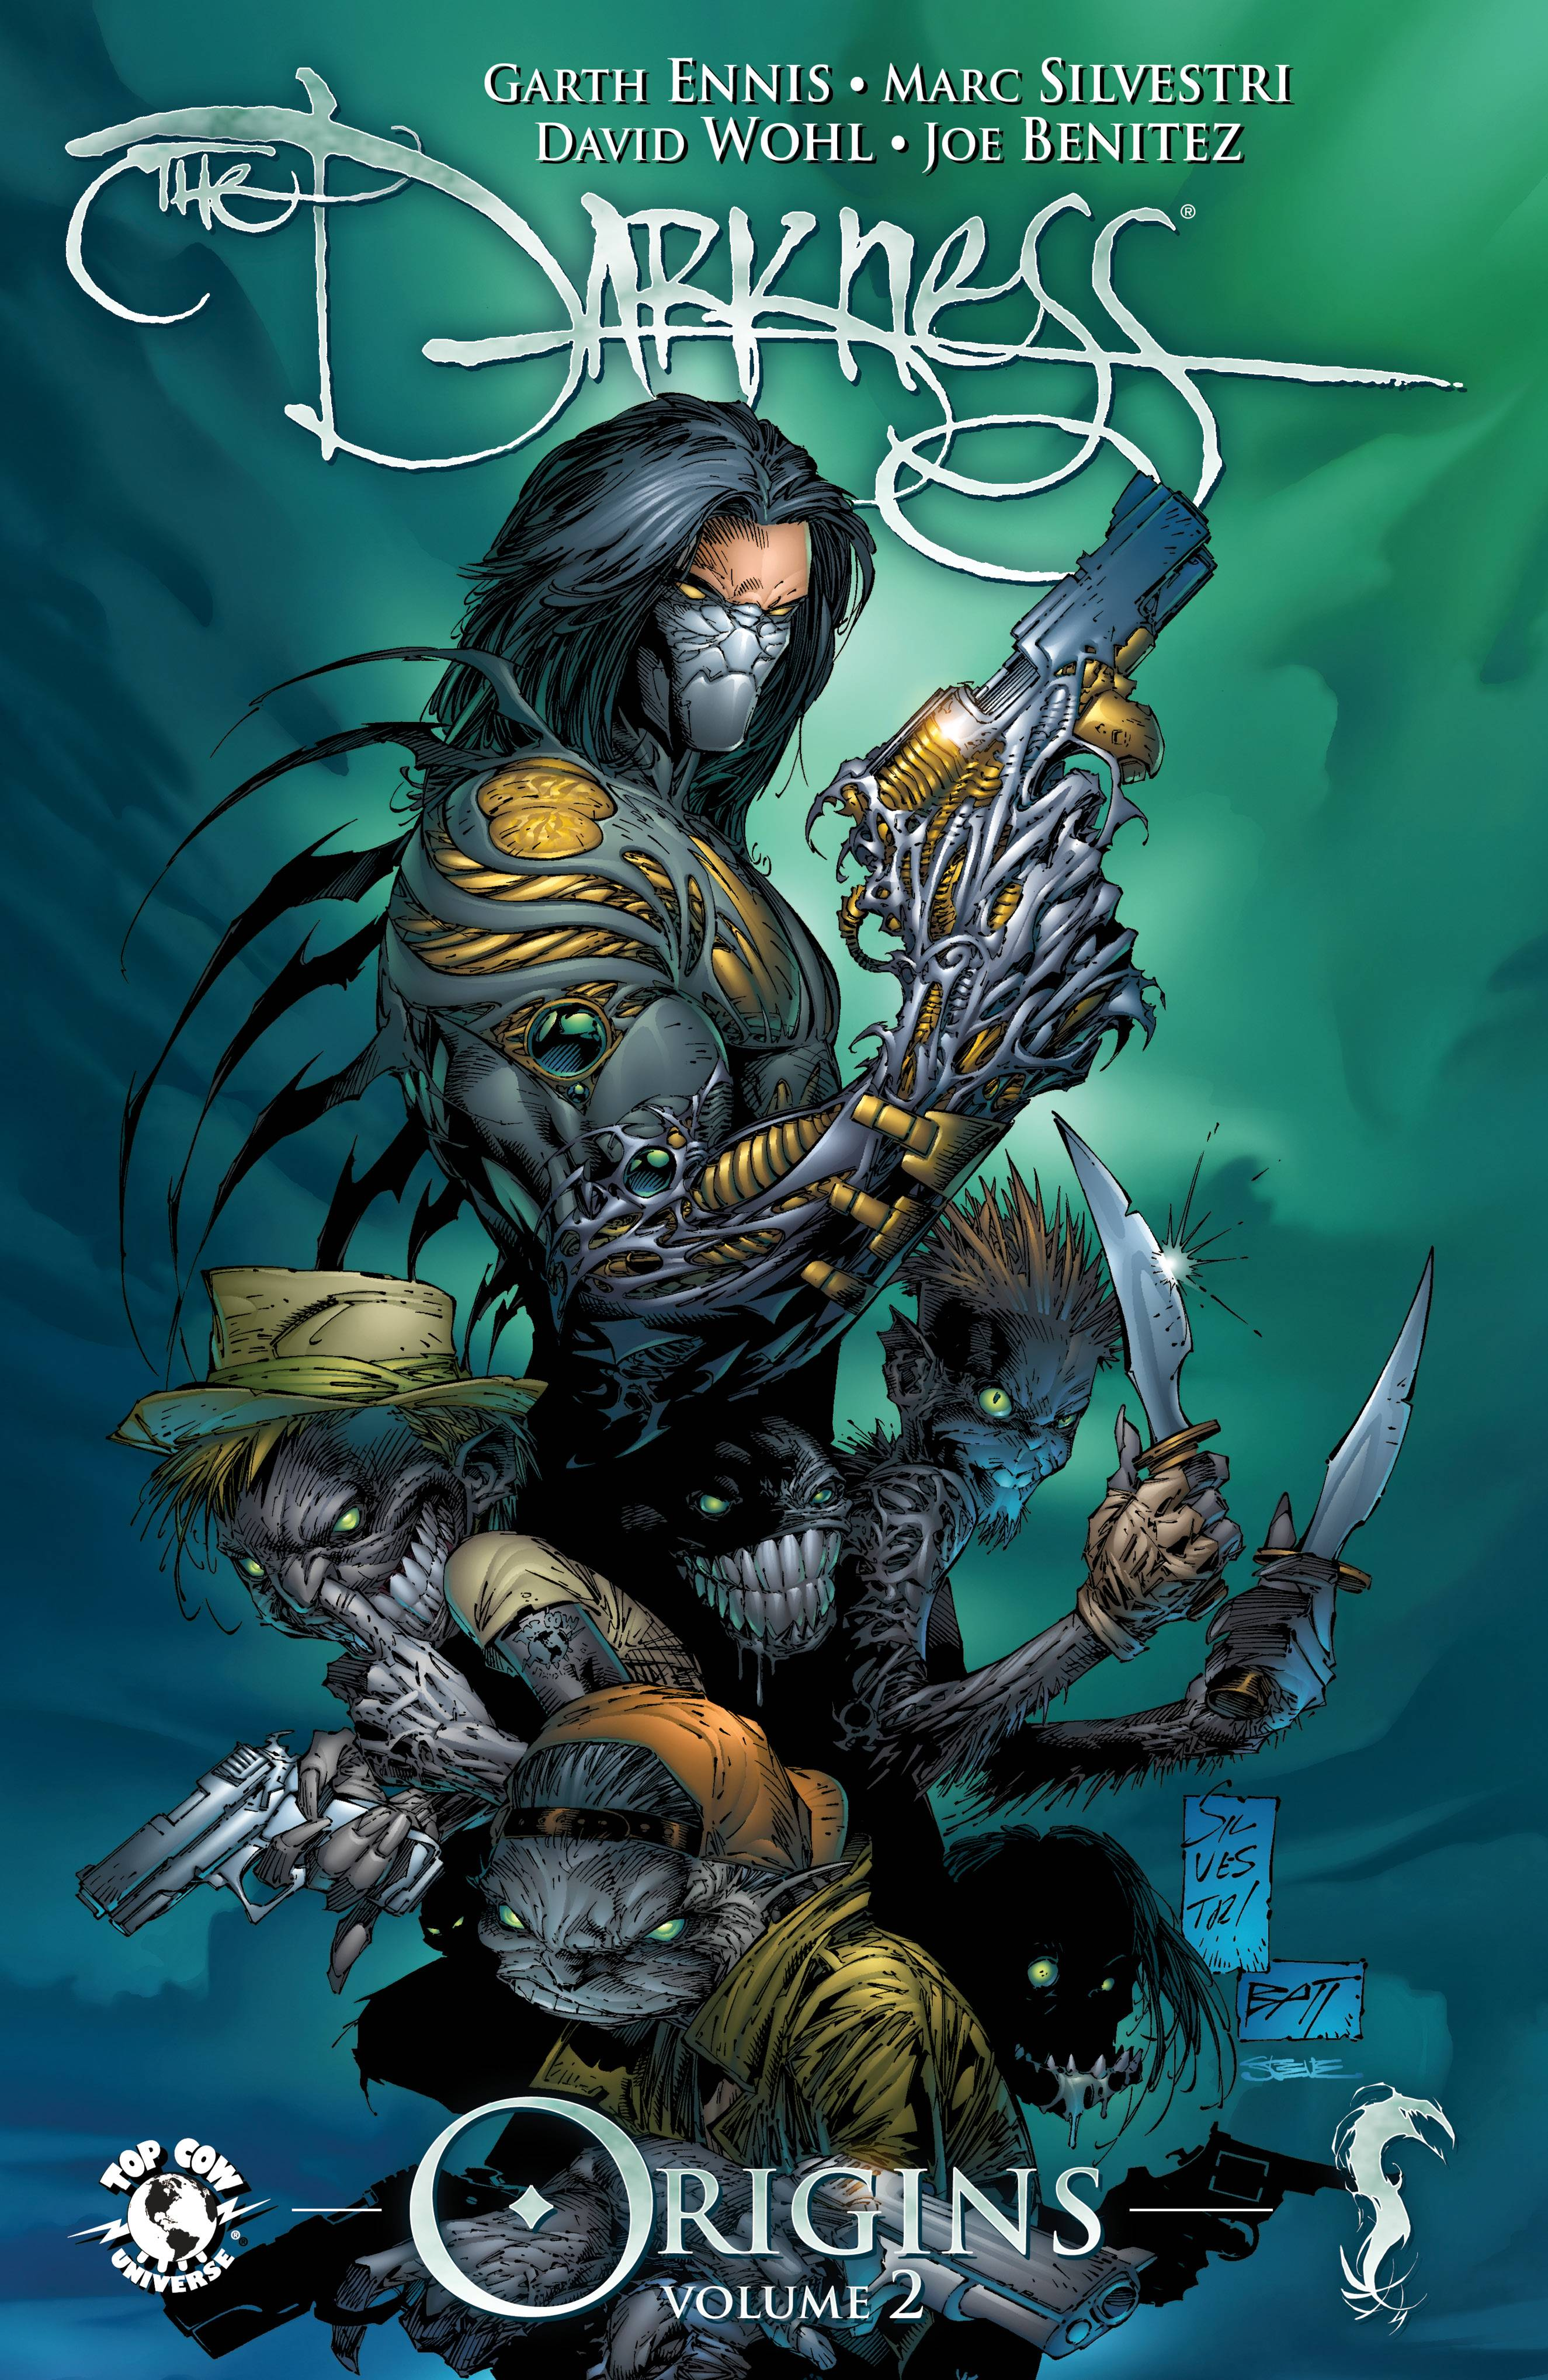 DARKNESS ORIGINS TP VOL 02 (NEW PTG)